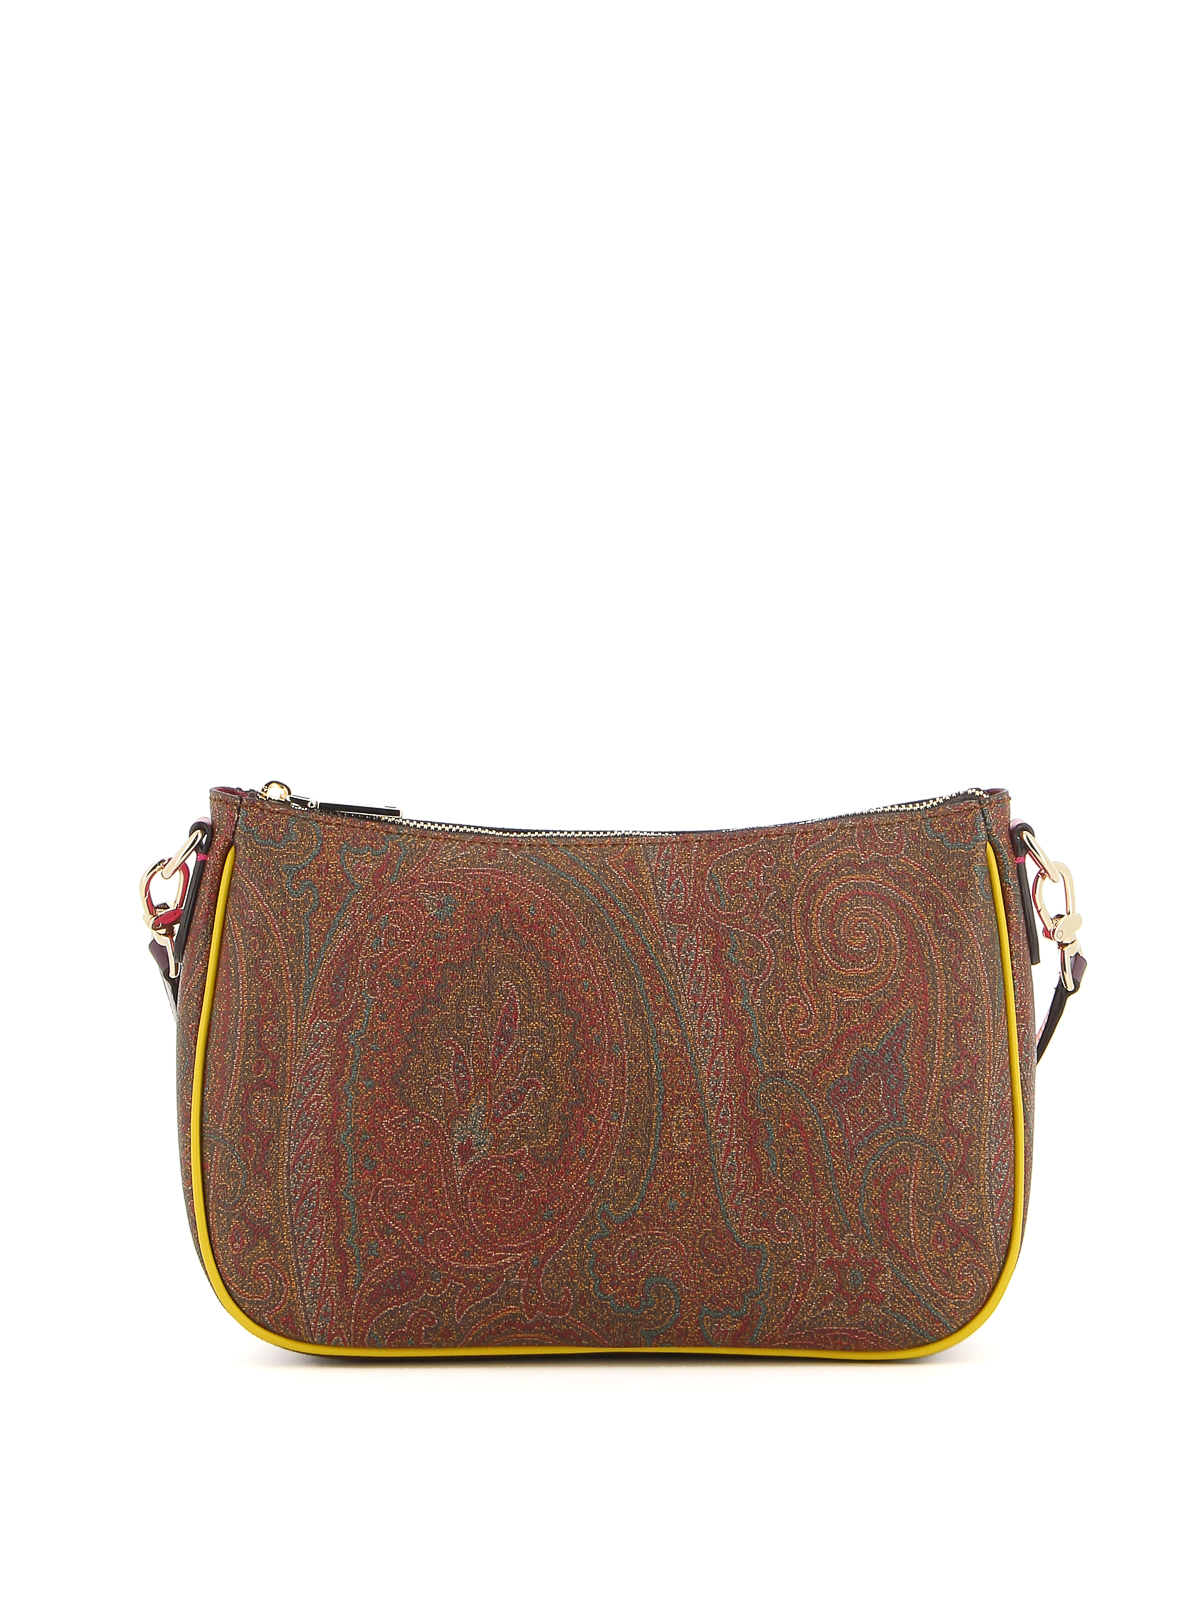 Etro PAISLEY PATTERNED SHOULDER BAG